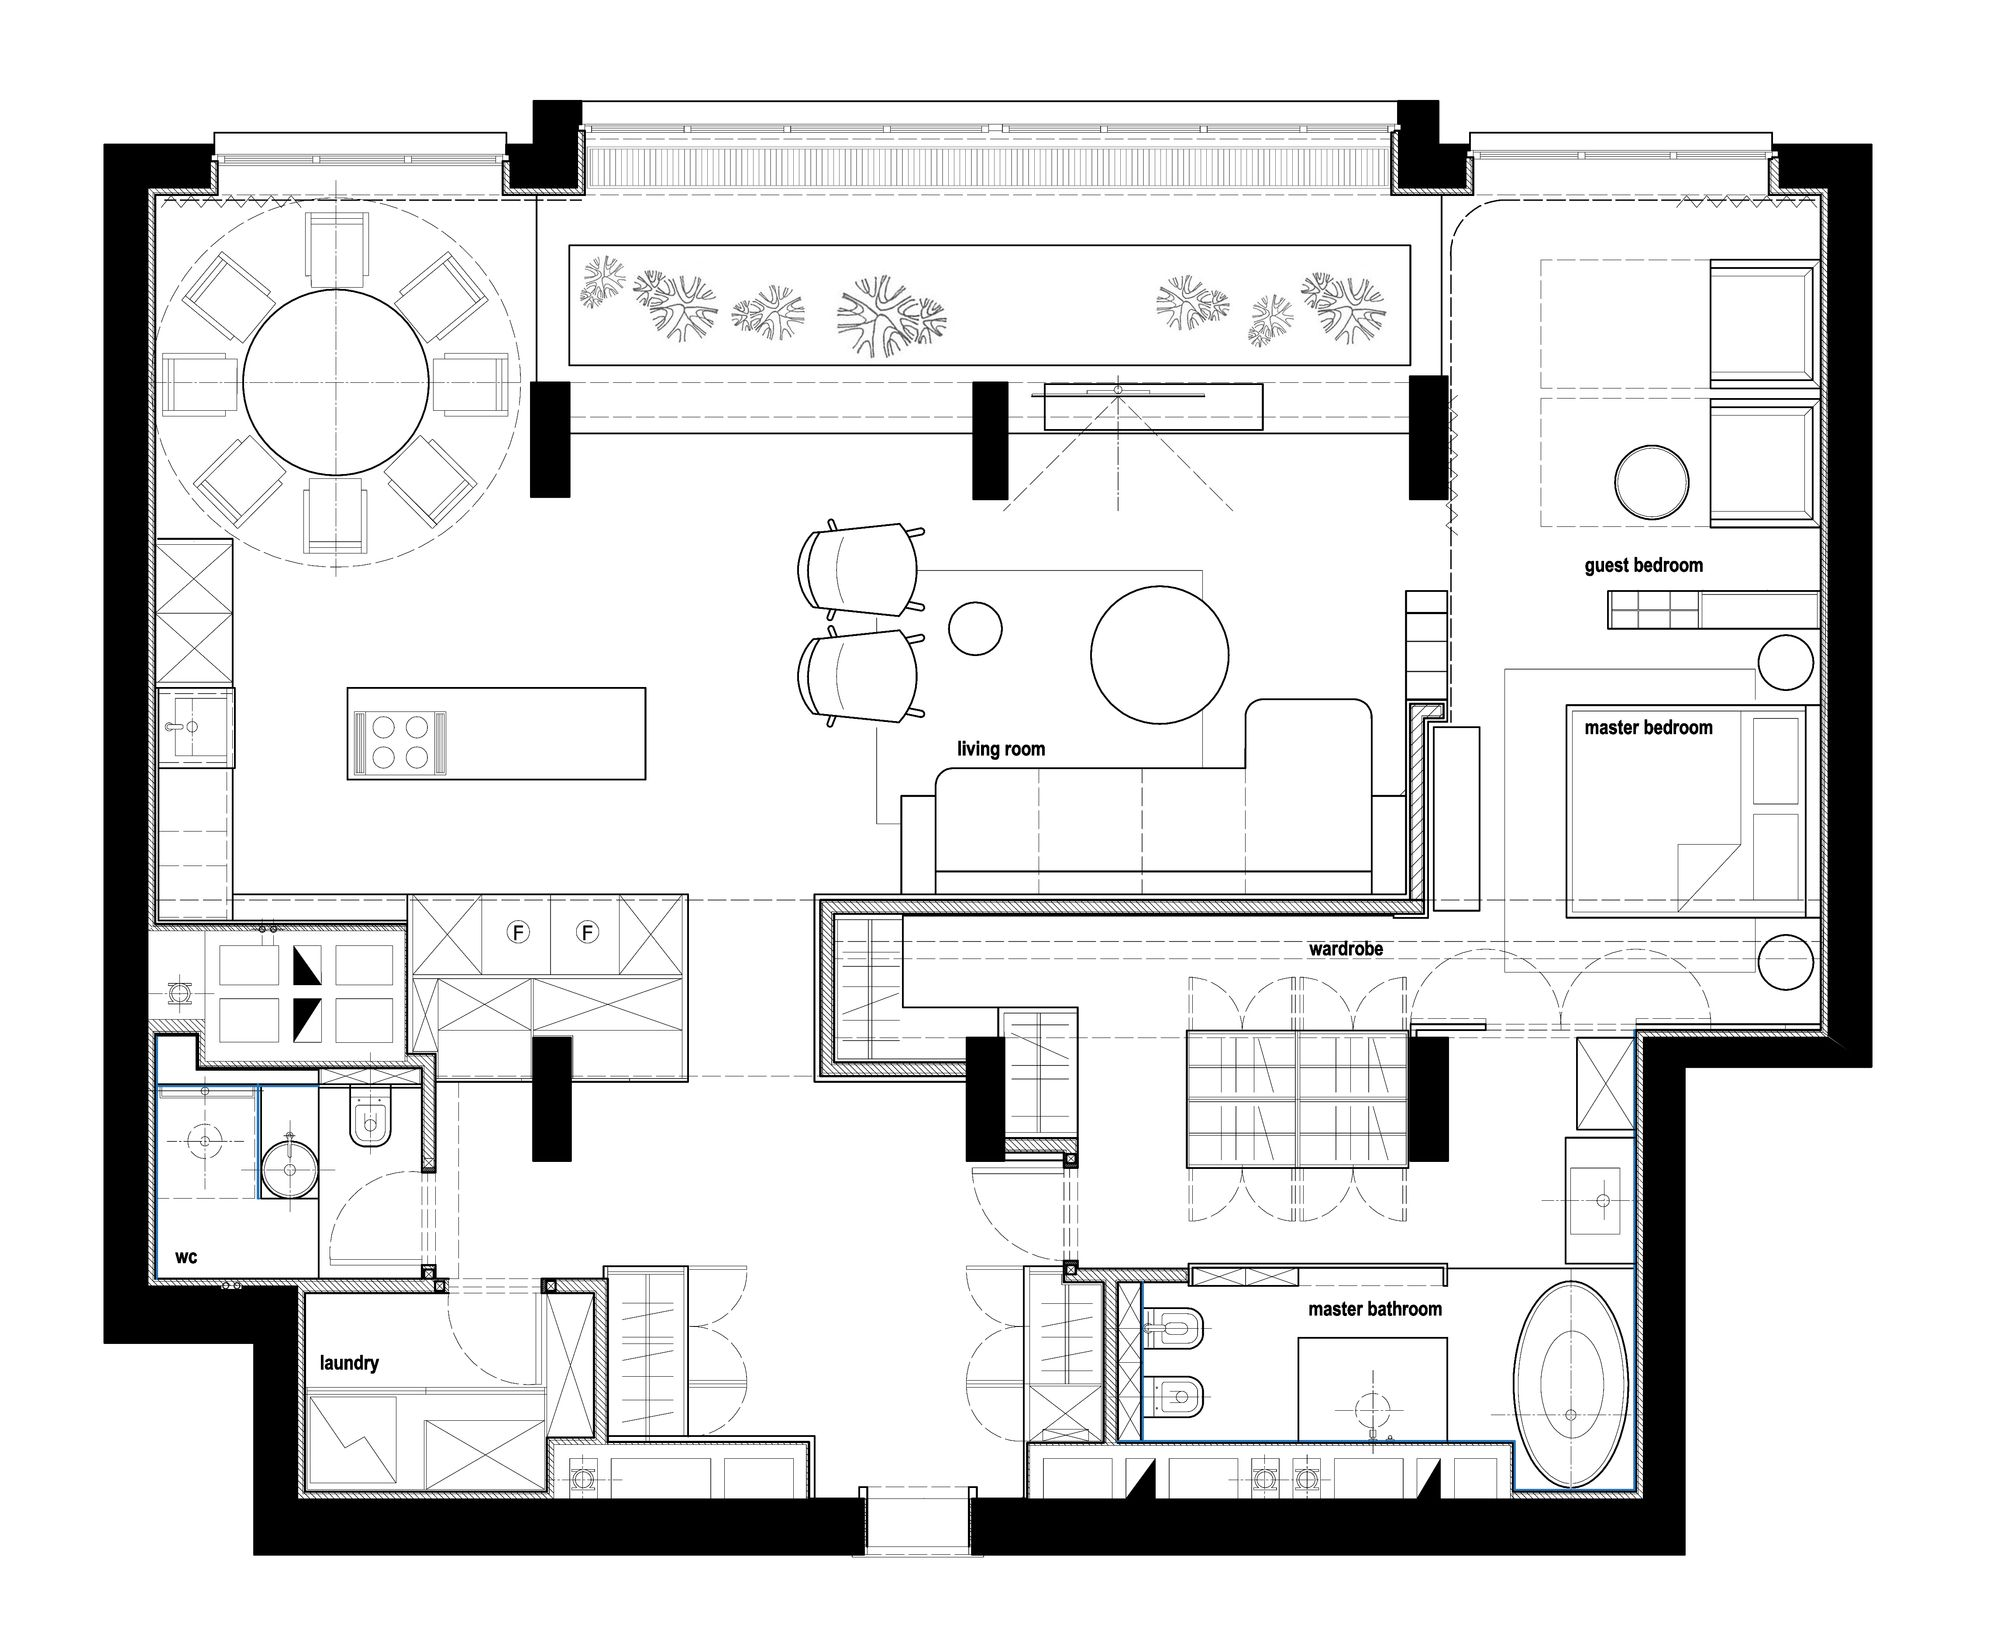 Pin By Rodrigo Zamora On Mb Can Ho O Interior Floor Plan Floor Plans Wood Interiors